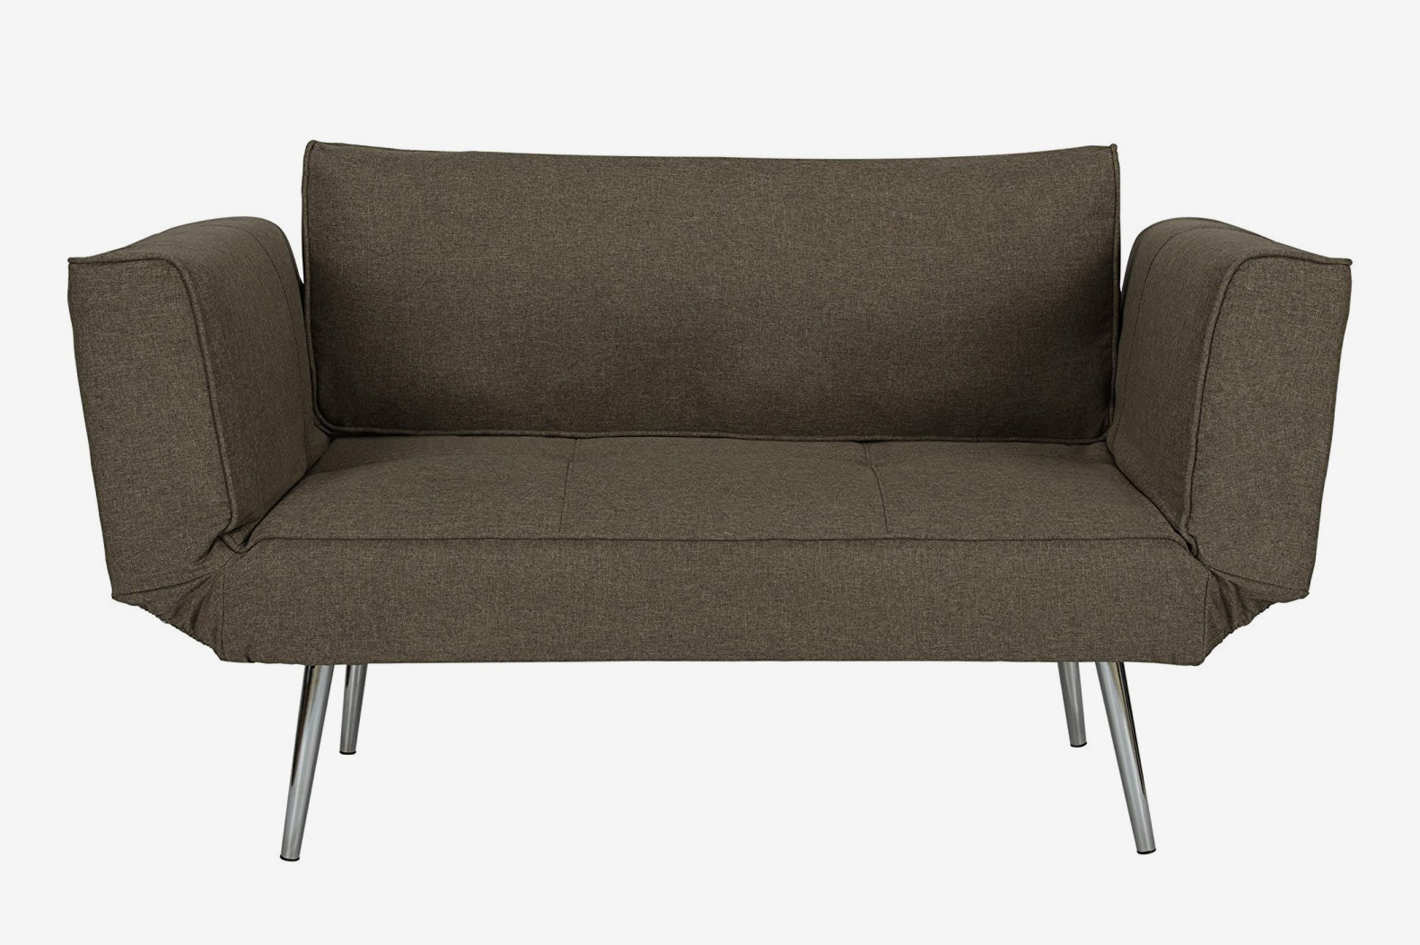 DHP Euro Sofa Futon Loveseat With Chrome Legs and Adjustable Armrests